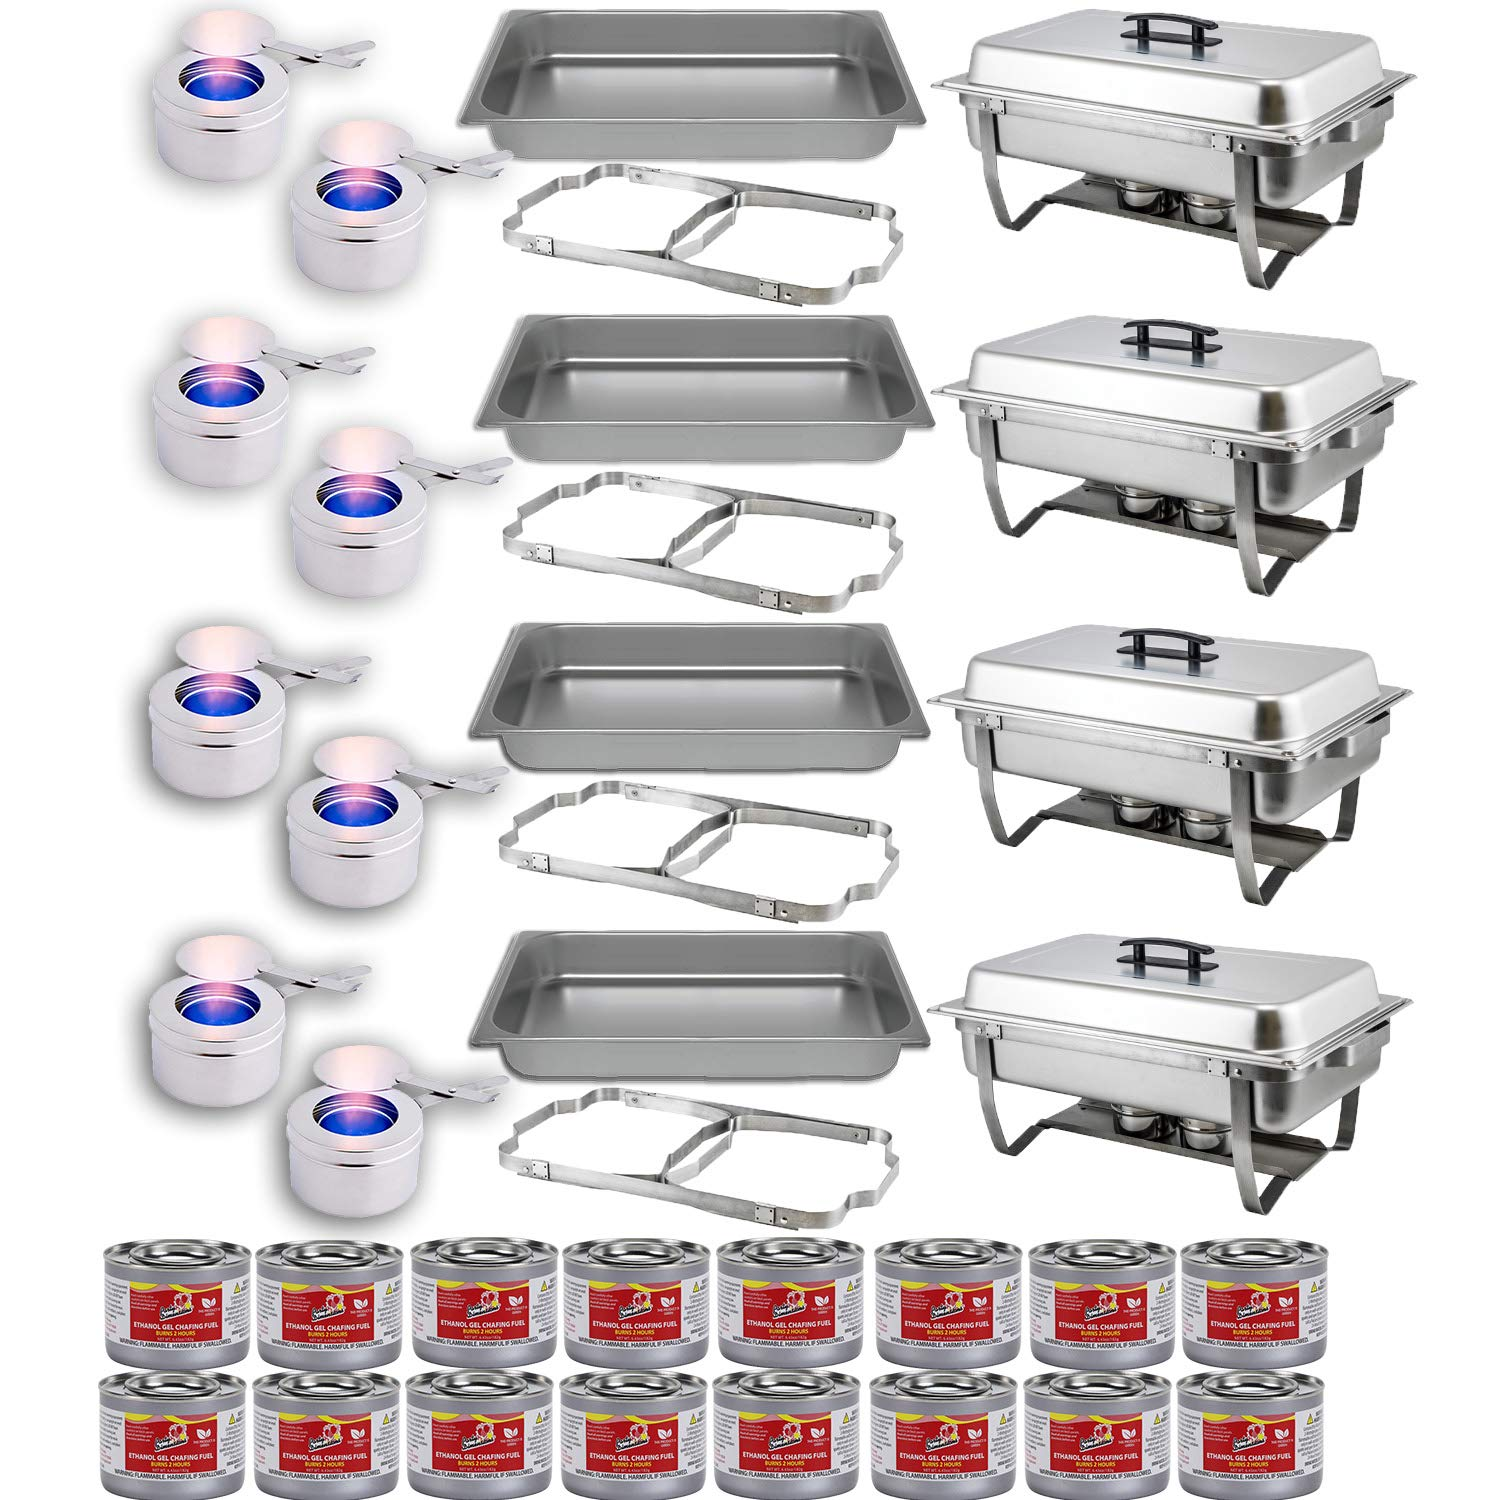 Chafing Dish Buffet Set w/Fuel — Folding Frame + Water Pan + Food Pan (8 qt) + 8 Fuel Holders + 16 Fuel Cans – 4 Full Warmer Kit